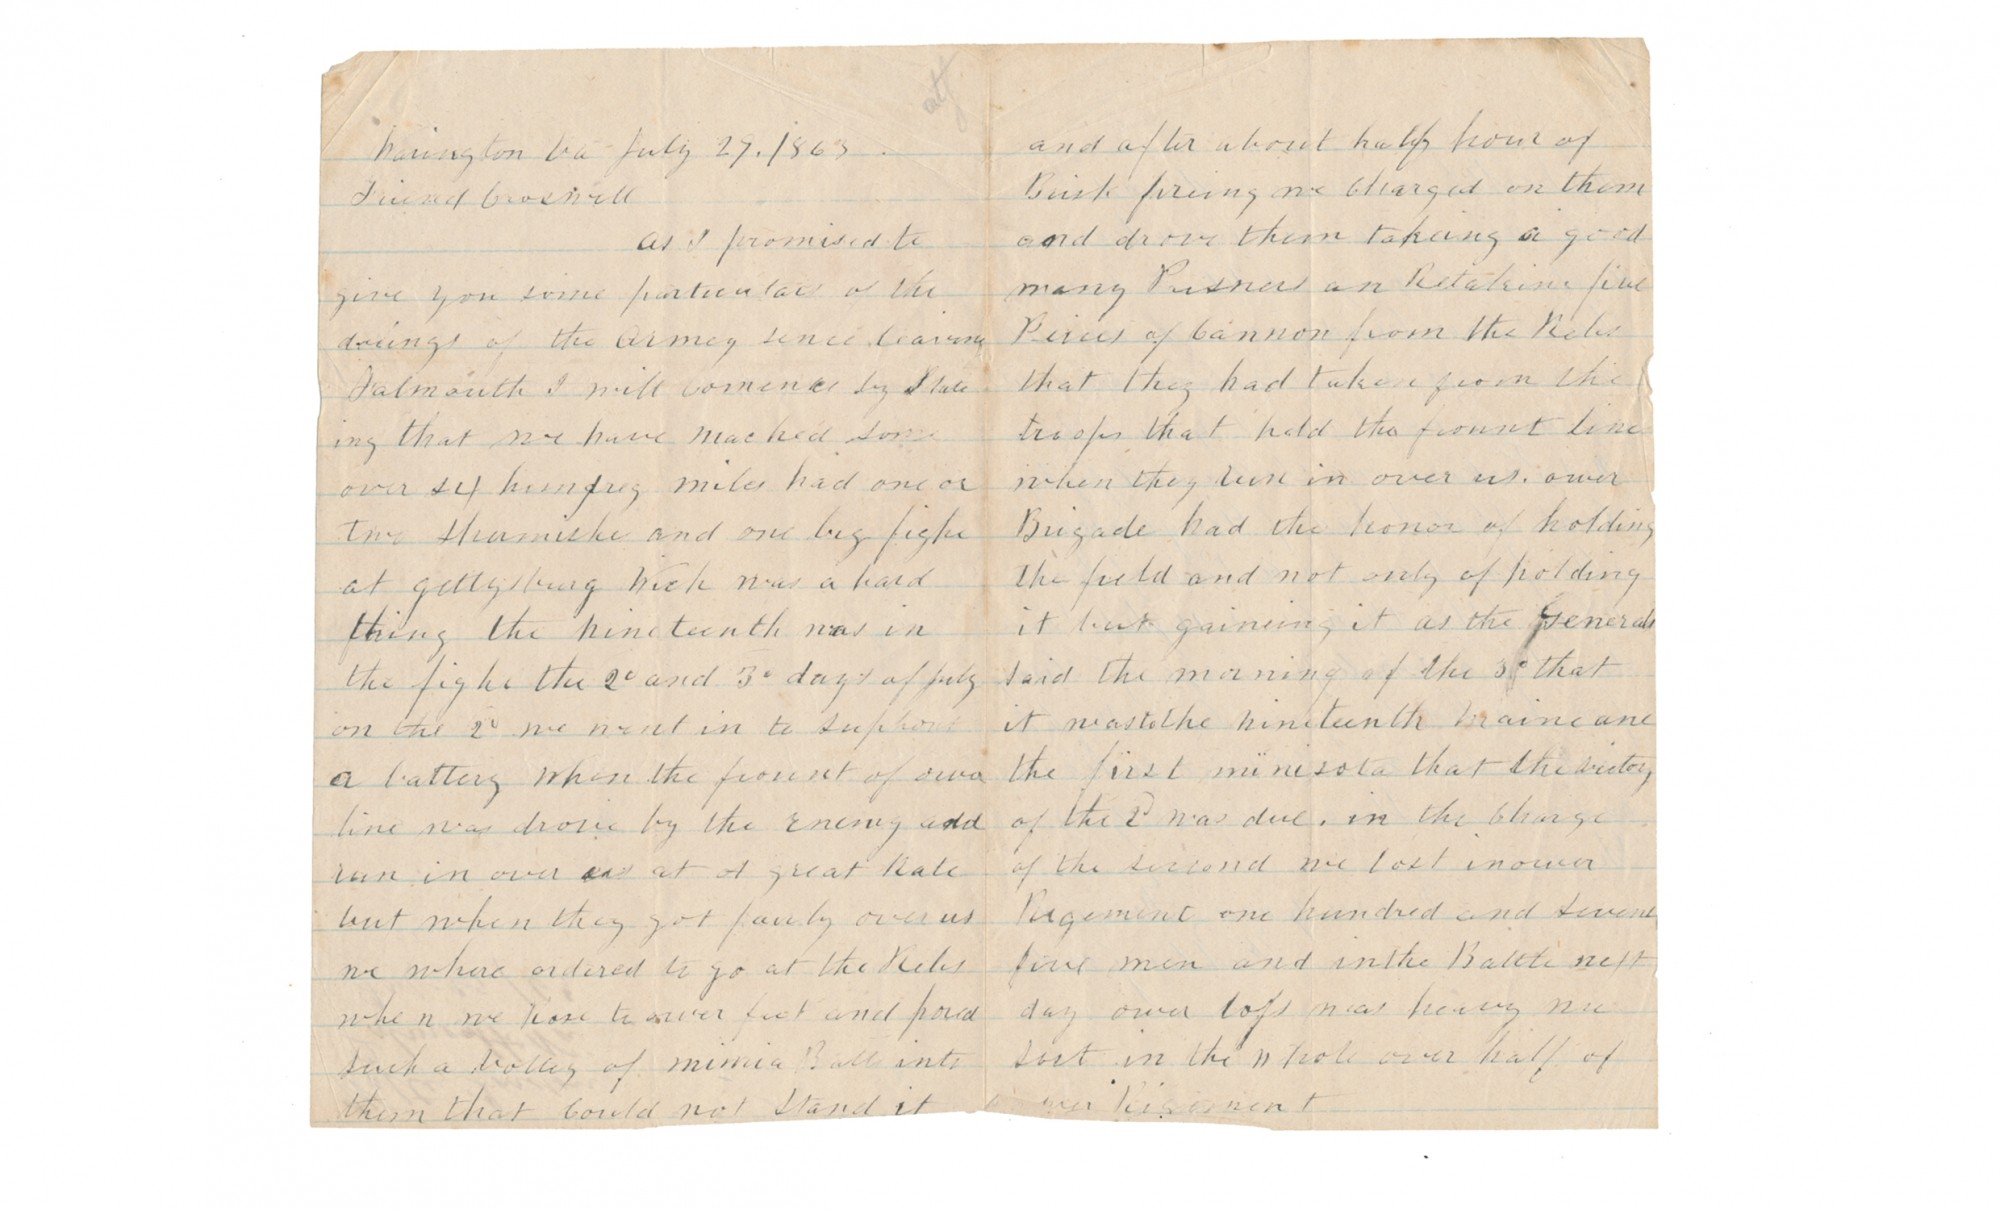 SOLDIER LETTER WITH GETTYSBURG NARRATIVE, WRITTEN BY WALTER JORDON, 19TH MAINE INFANTRY